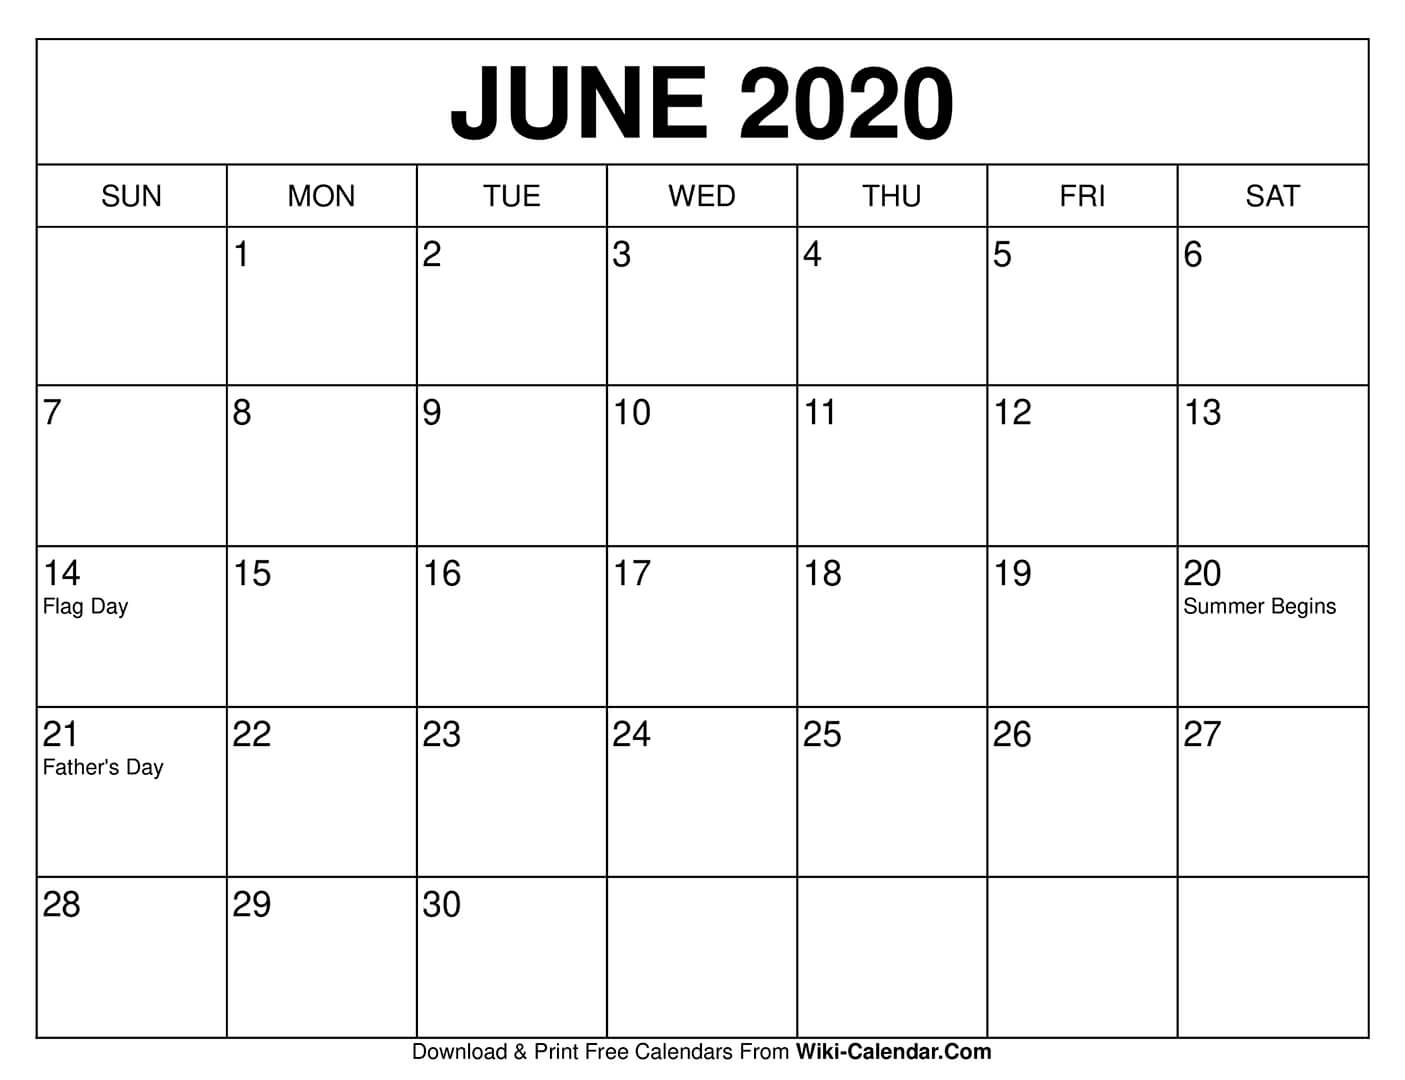 Free Printable June 2020 Calendars intended for 8.5 X 11 Free Printable Calendars